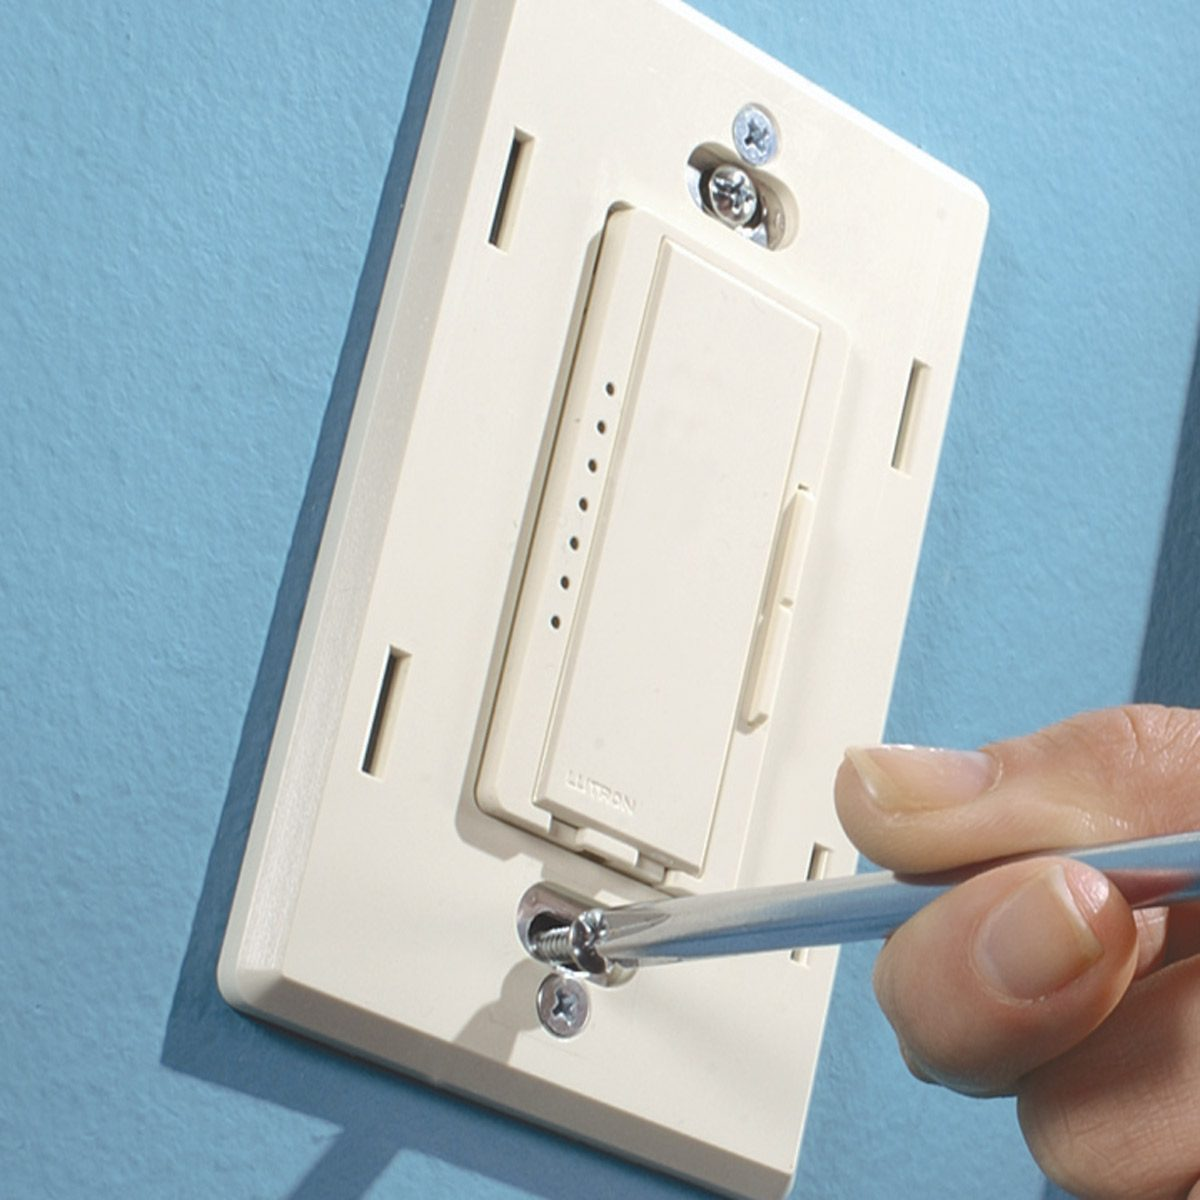 install dimmer switch